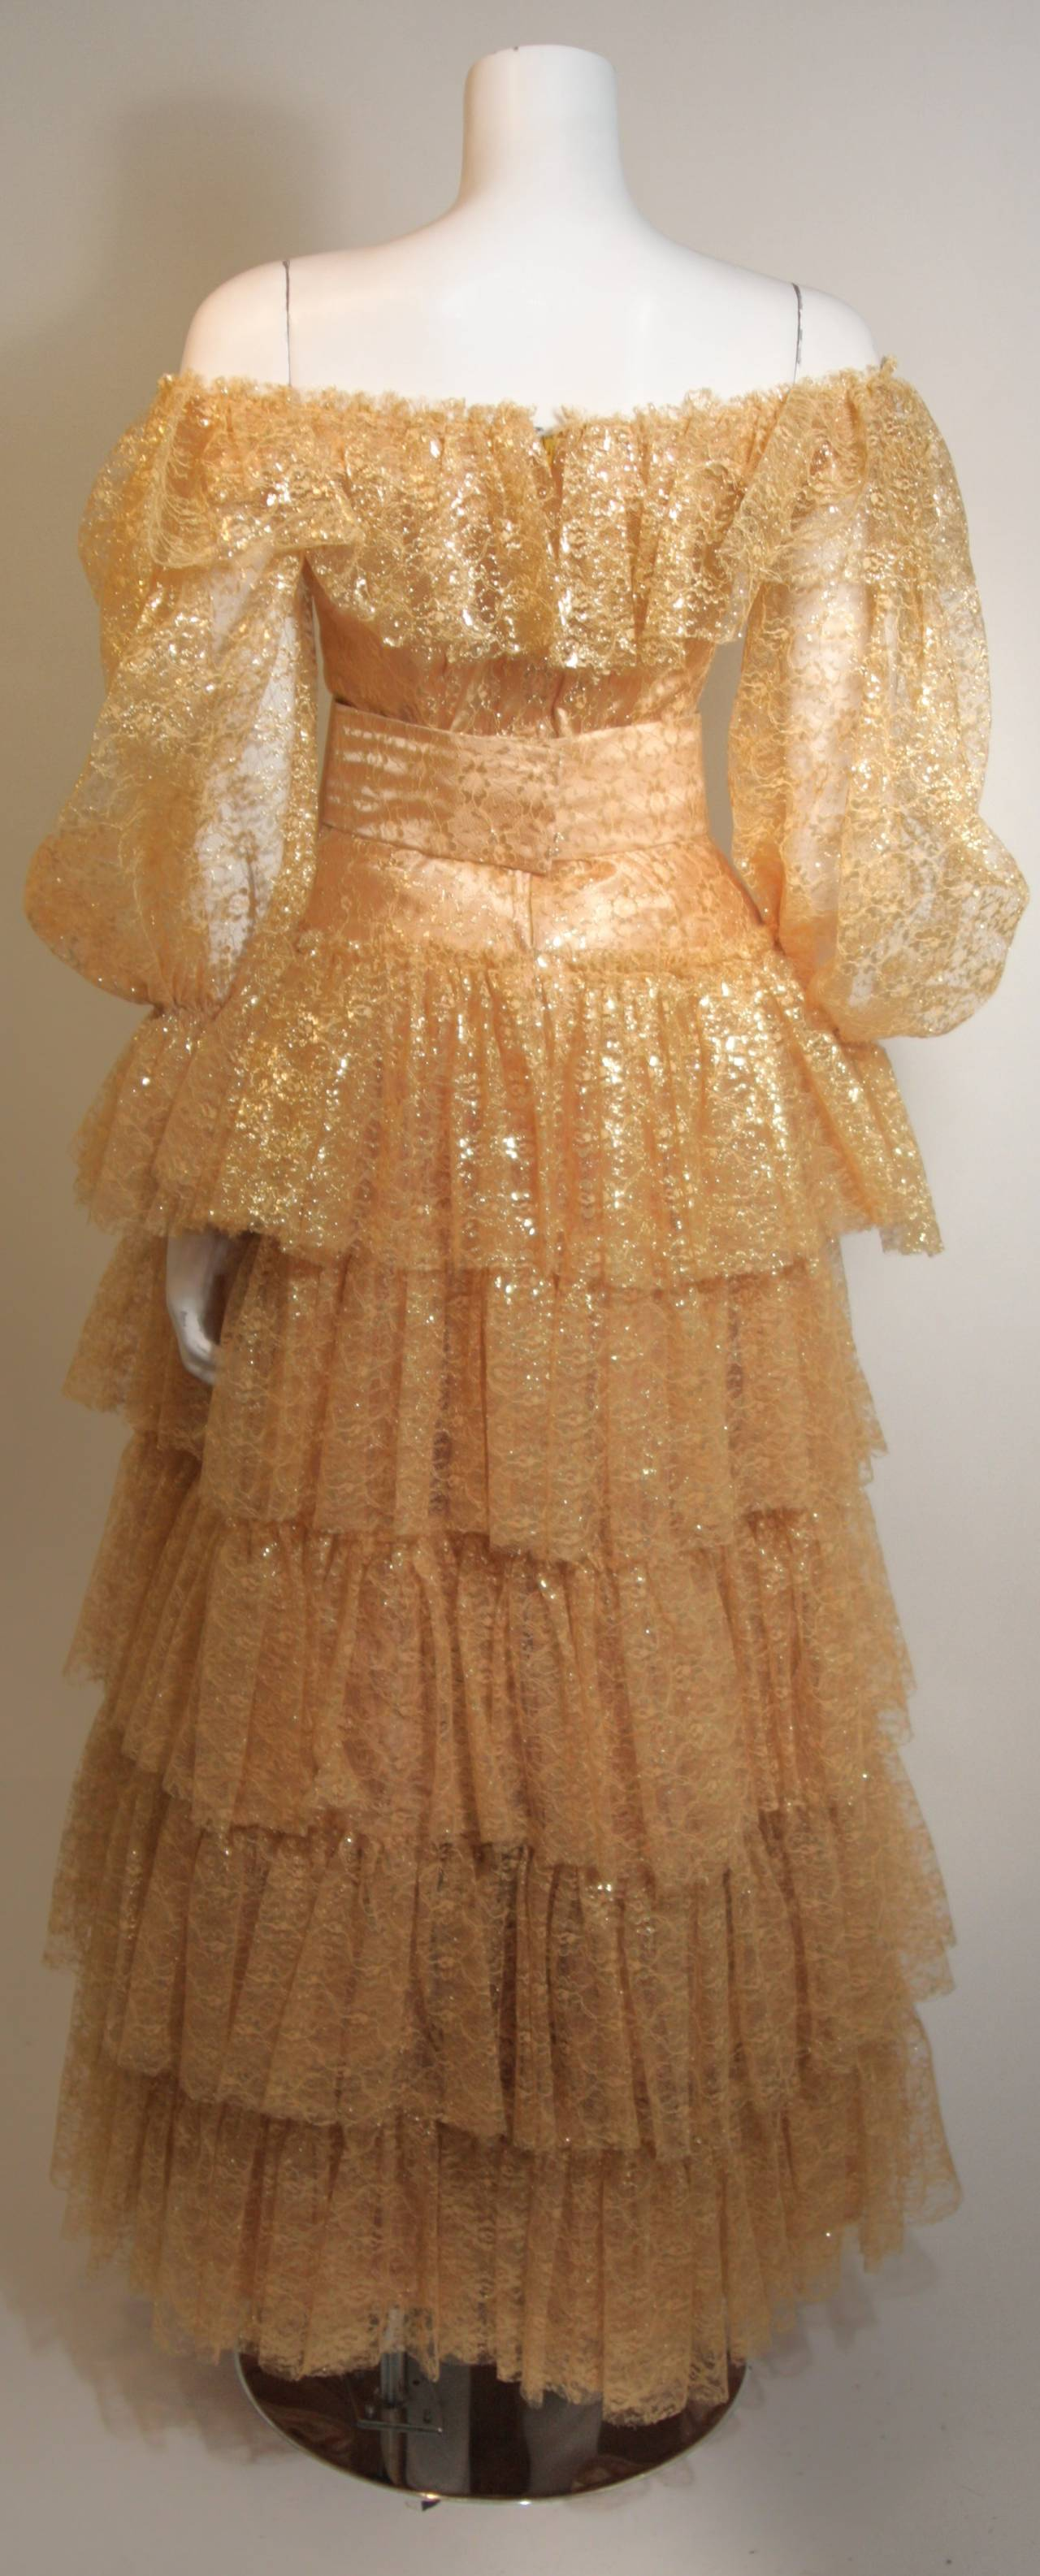 Attributed to Travilla Gold Tiered Lace Ball Gown with sheer lace sleeves size 4 For Sale 3